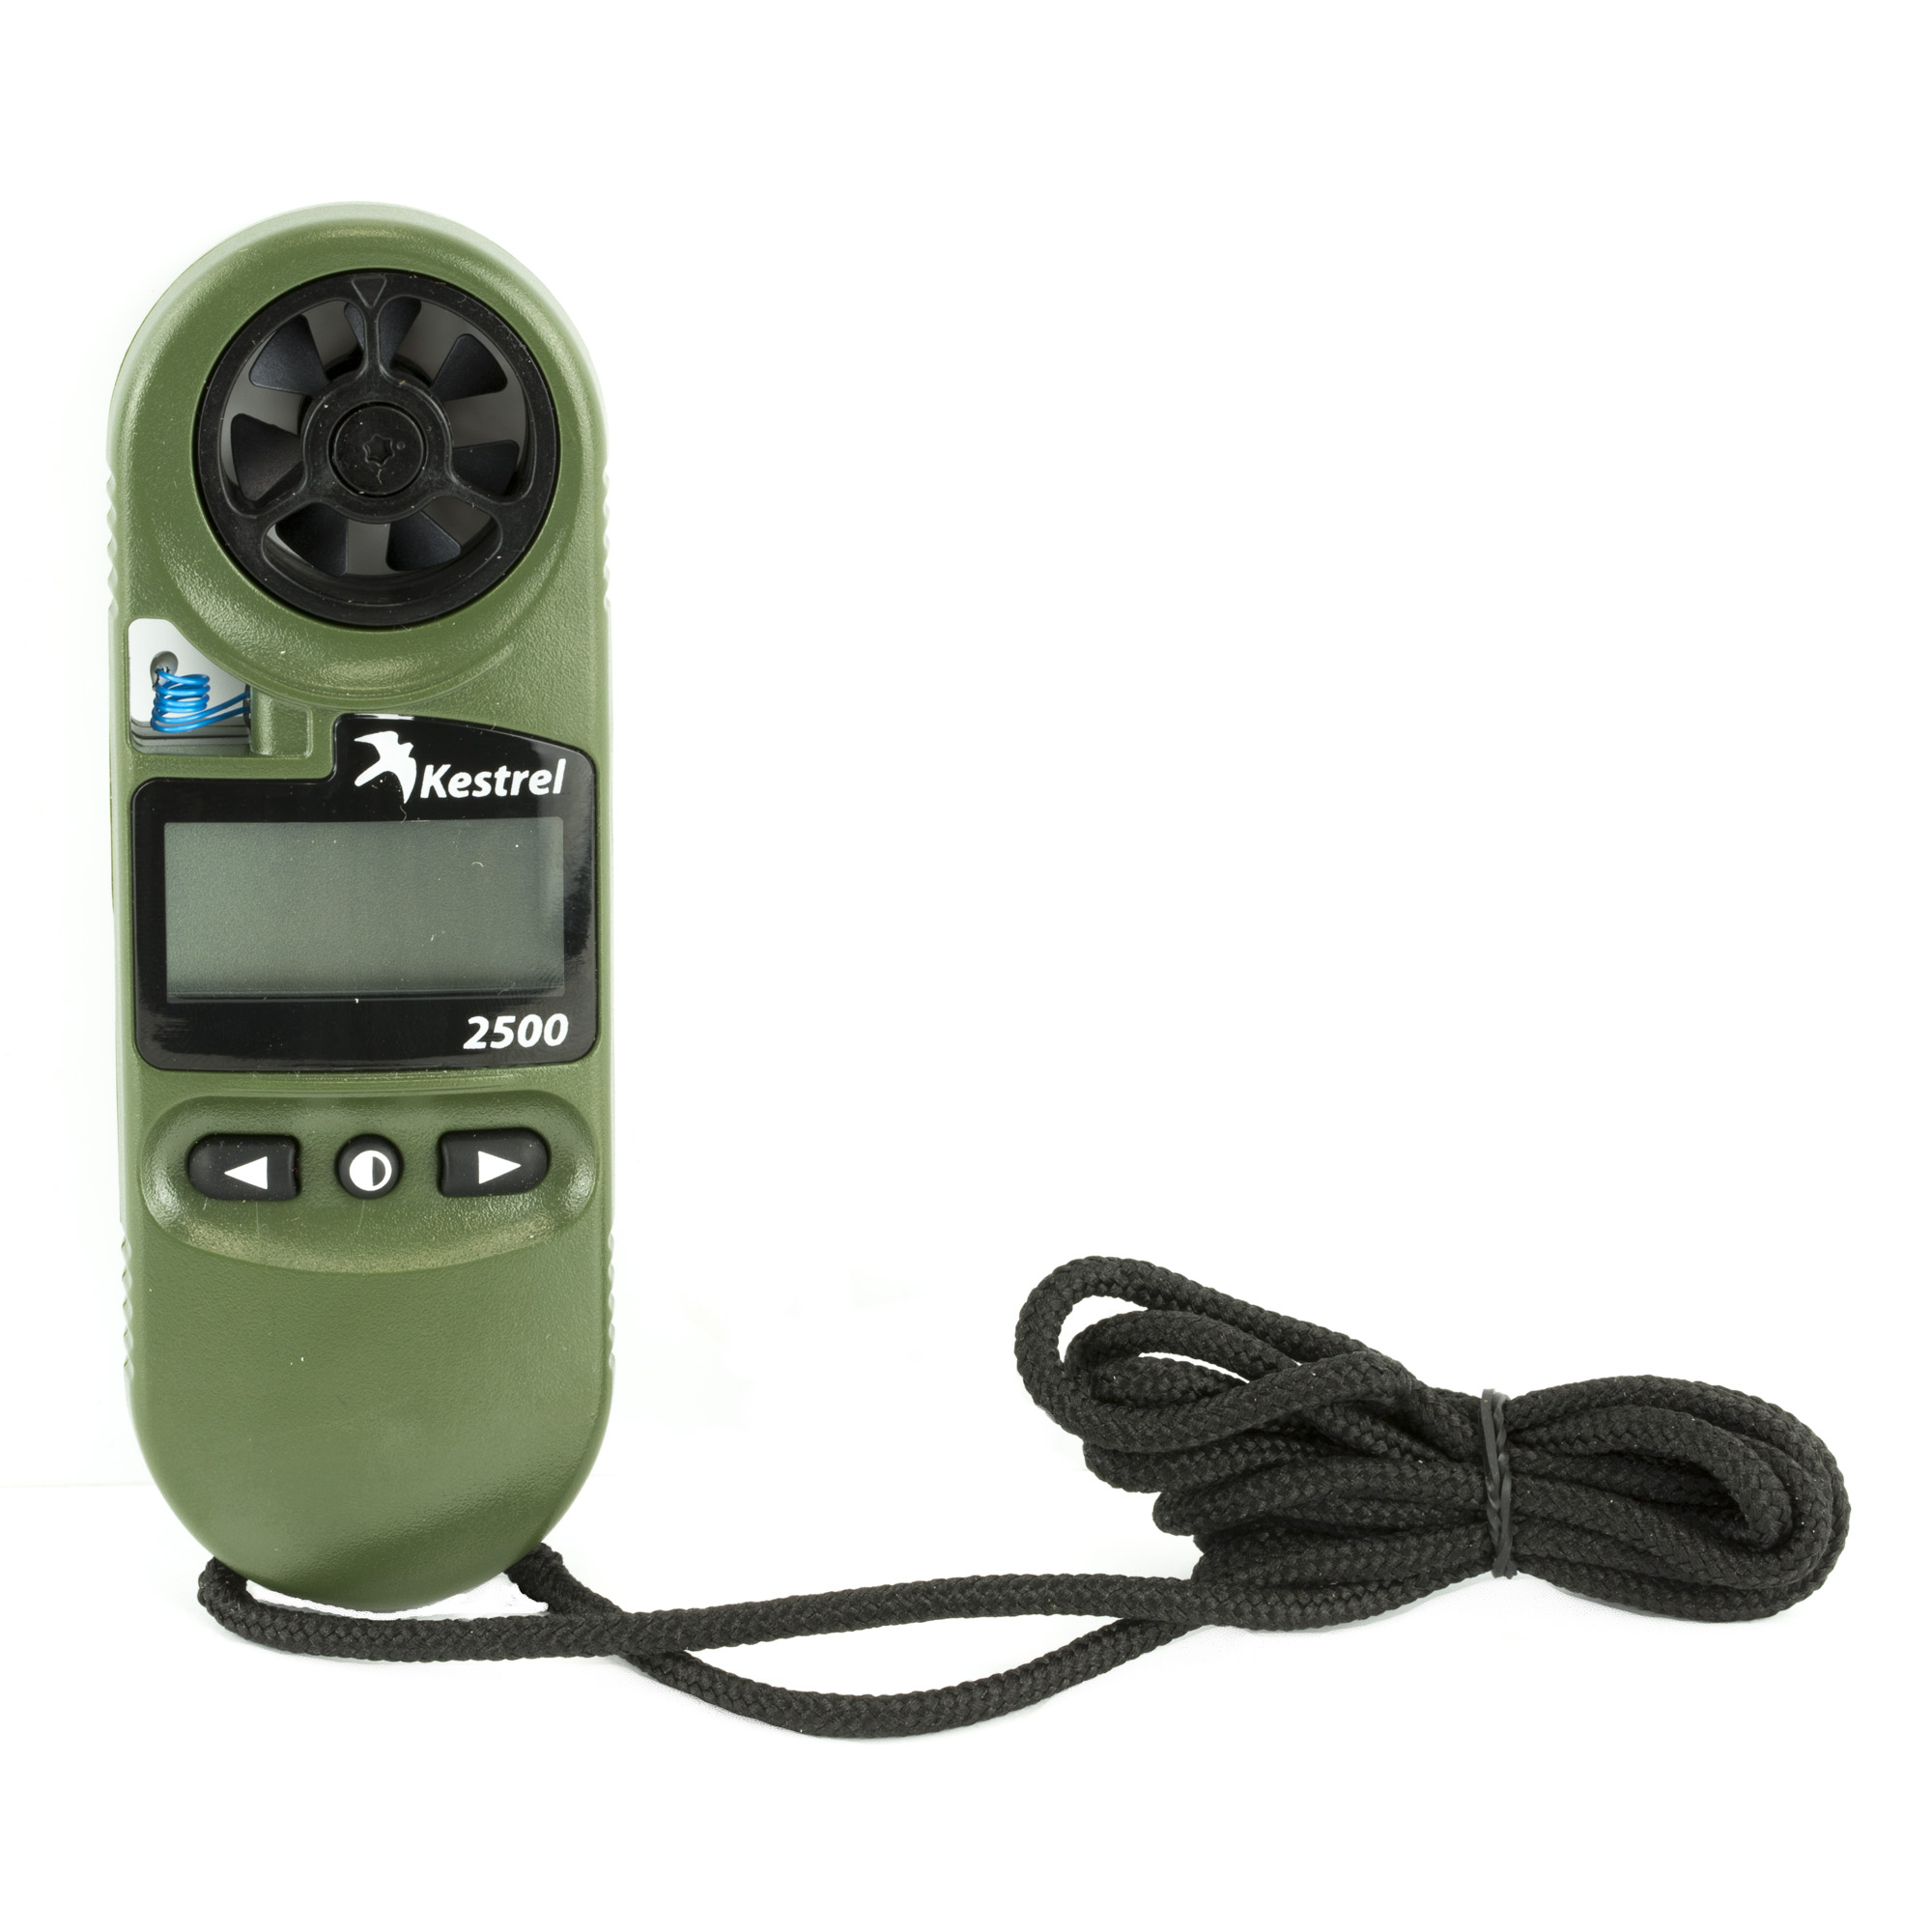 "The Kestrel 2500 Handheld Weather Meter measures wind and temperature with total accuracy"" and has the added benefits of an air pressure sensor that provides altitude and barometric information. Kestrel 2500 technology enables you to follow changes in air pressure that help predict impending changes in the weather. Factor in the 2500's digital altimeter"" and you have most of the weather information you need for outdoor activities ranging from model airplane flight to rifle practice. A quick compare chart of the basic models shows you the differences between several Kestrel models. As with all Kestrels"" the 2500's sensitive and user-replaceable impeller technology provides accurate wind speed info. Additionally"" an external temperature sensor and waterproof casing allow you to gauge the temperature of water and snow"" as well as the open air. A hard slide-on case"" lanyard"" and battery are included. The Kestrel 2500 was originated as a basic model for long range shooters at an affordable price and someone who didn't need the ballistic features built in like the 5700 Elite or any others in the Kestrel Ballistics Line of meters. A simple video shows how to achieve station pressure with a Kestrel 2500. For those using it at night"" the Olive Drab NV version of the Kestrel 2500 features a night-vision preserving backlight. This backlight incorporates an optical filter to reduce overall brightness and minimize blue and green spectrum light to preserve night vision. (Note: This backlight appears soft greyish pink"" not ""red"""" and is still in the visible spectrum"" so is not compatible with night-vision equipment"